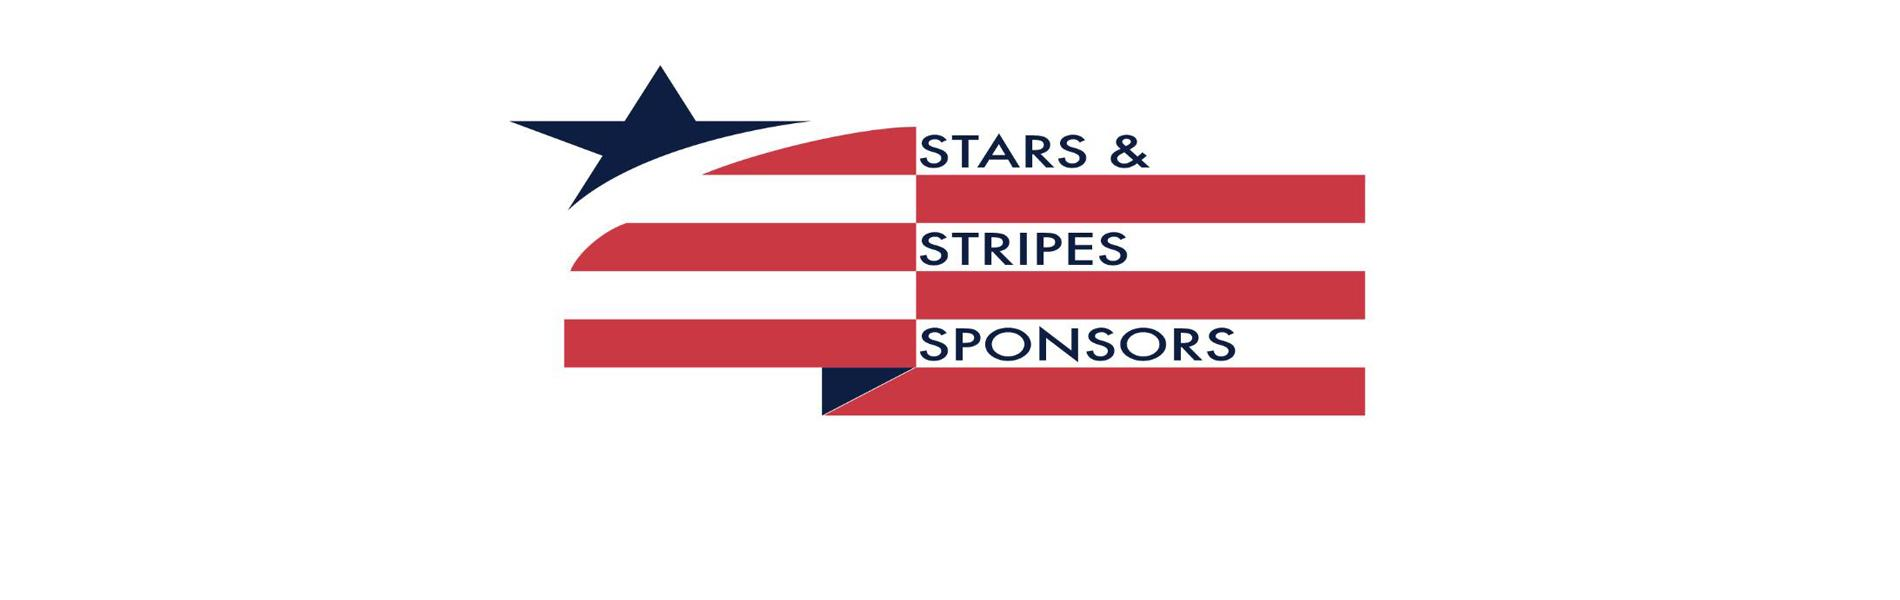 Stars and Stripes Sponsors banner_0